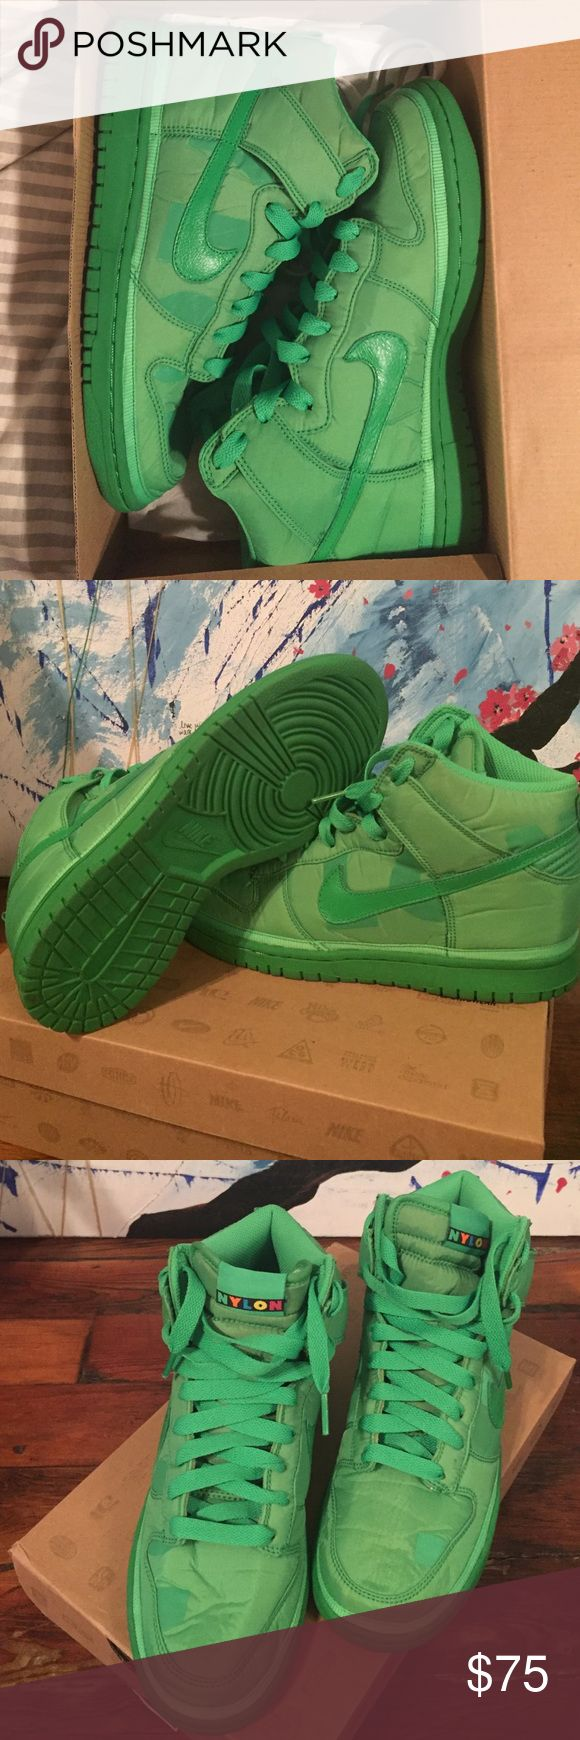 Women's Nike 8.5 high top Nylon Dunk, Green Spark These were worn only 2 or 3 times, and kept in the original box when not worn. Nike made a limited amount for Nylon Magazine. Nike Shoes Sneakers